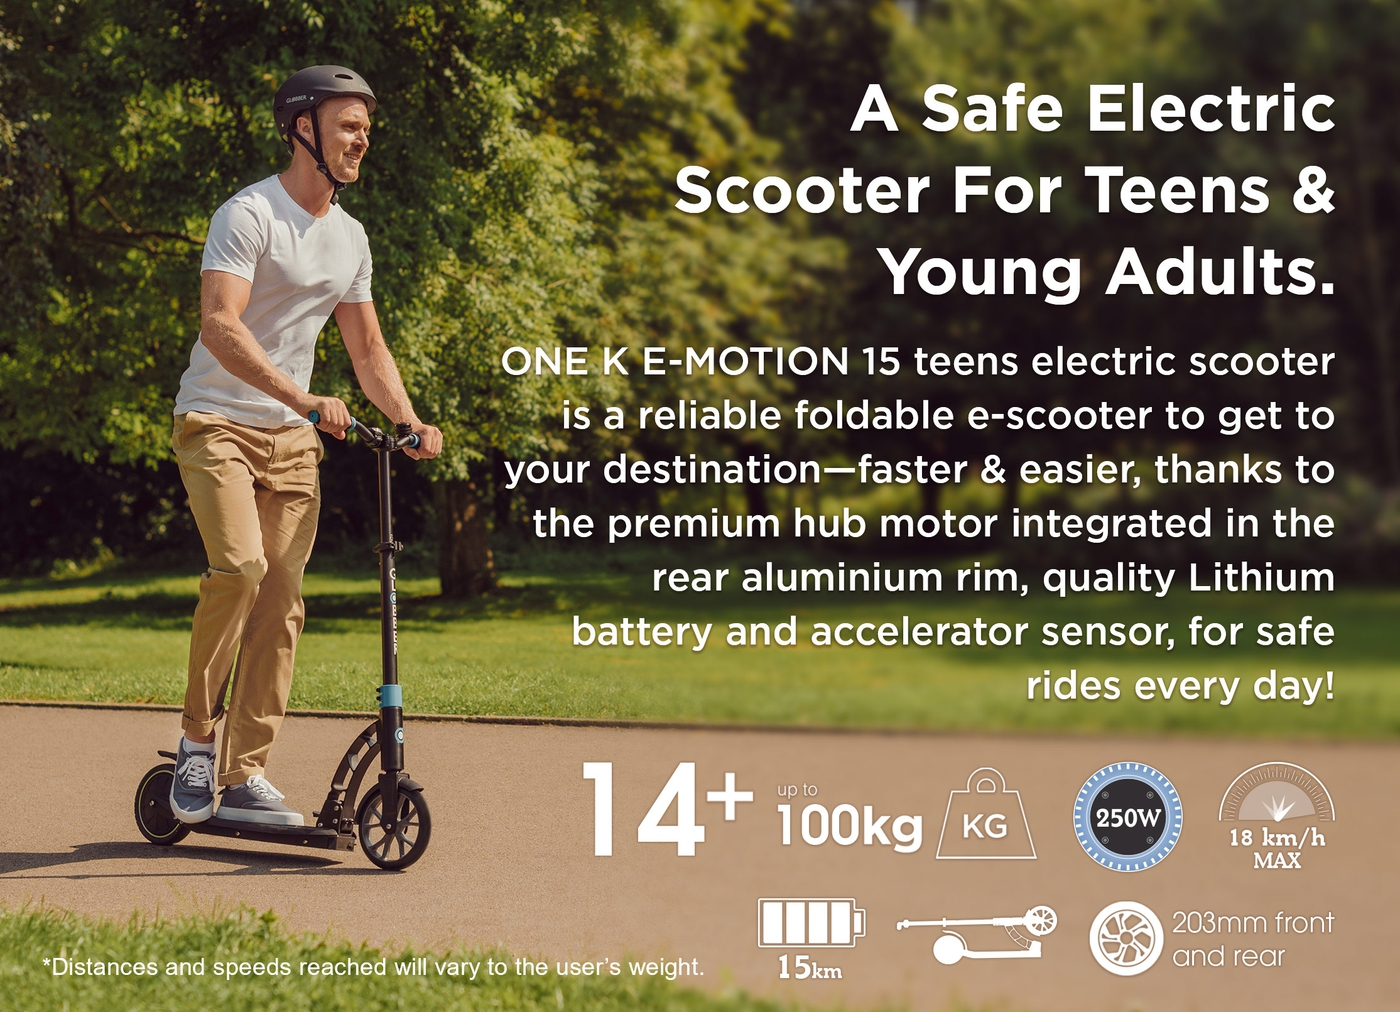 A Safe Electric Scooter For Teens & Young Adults.